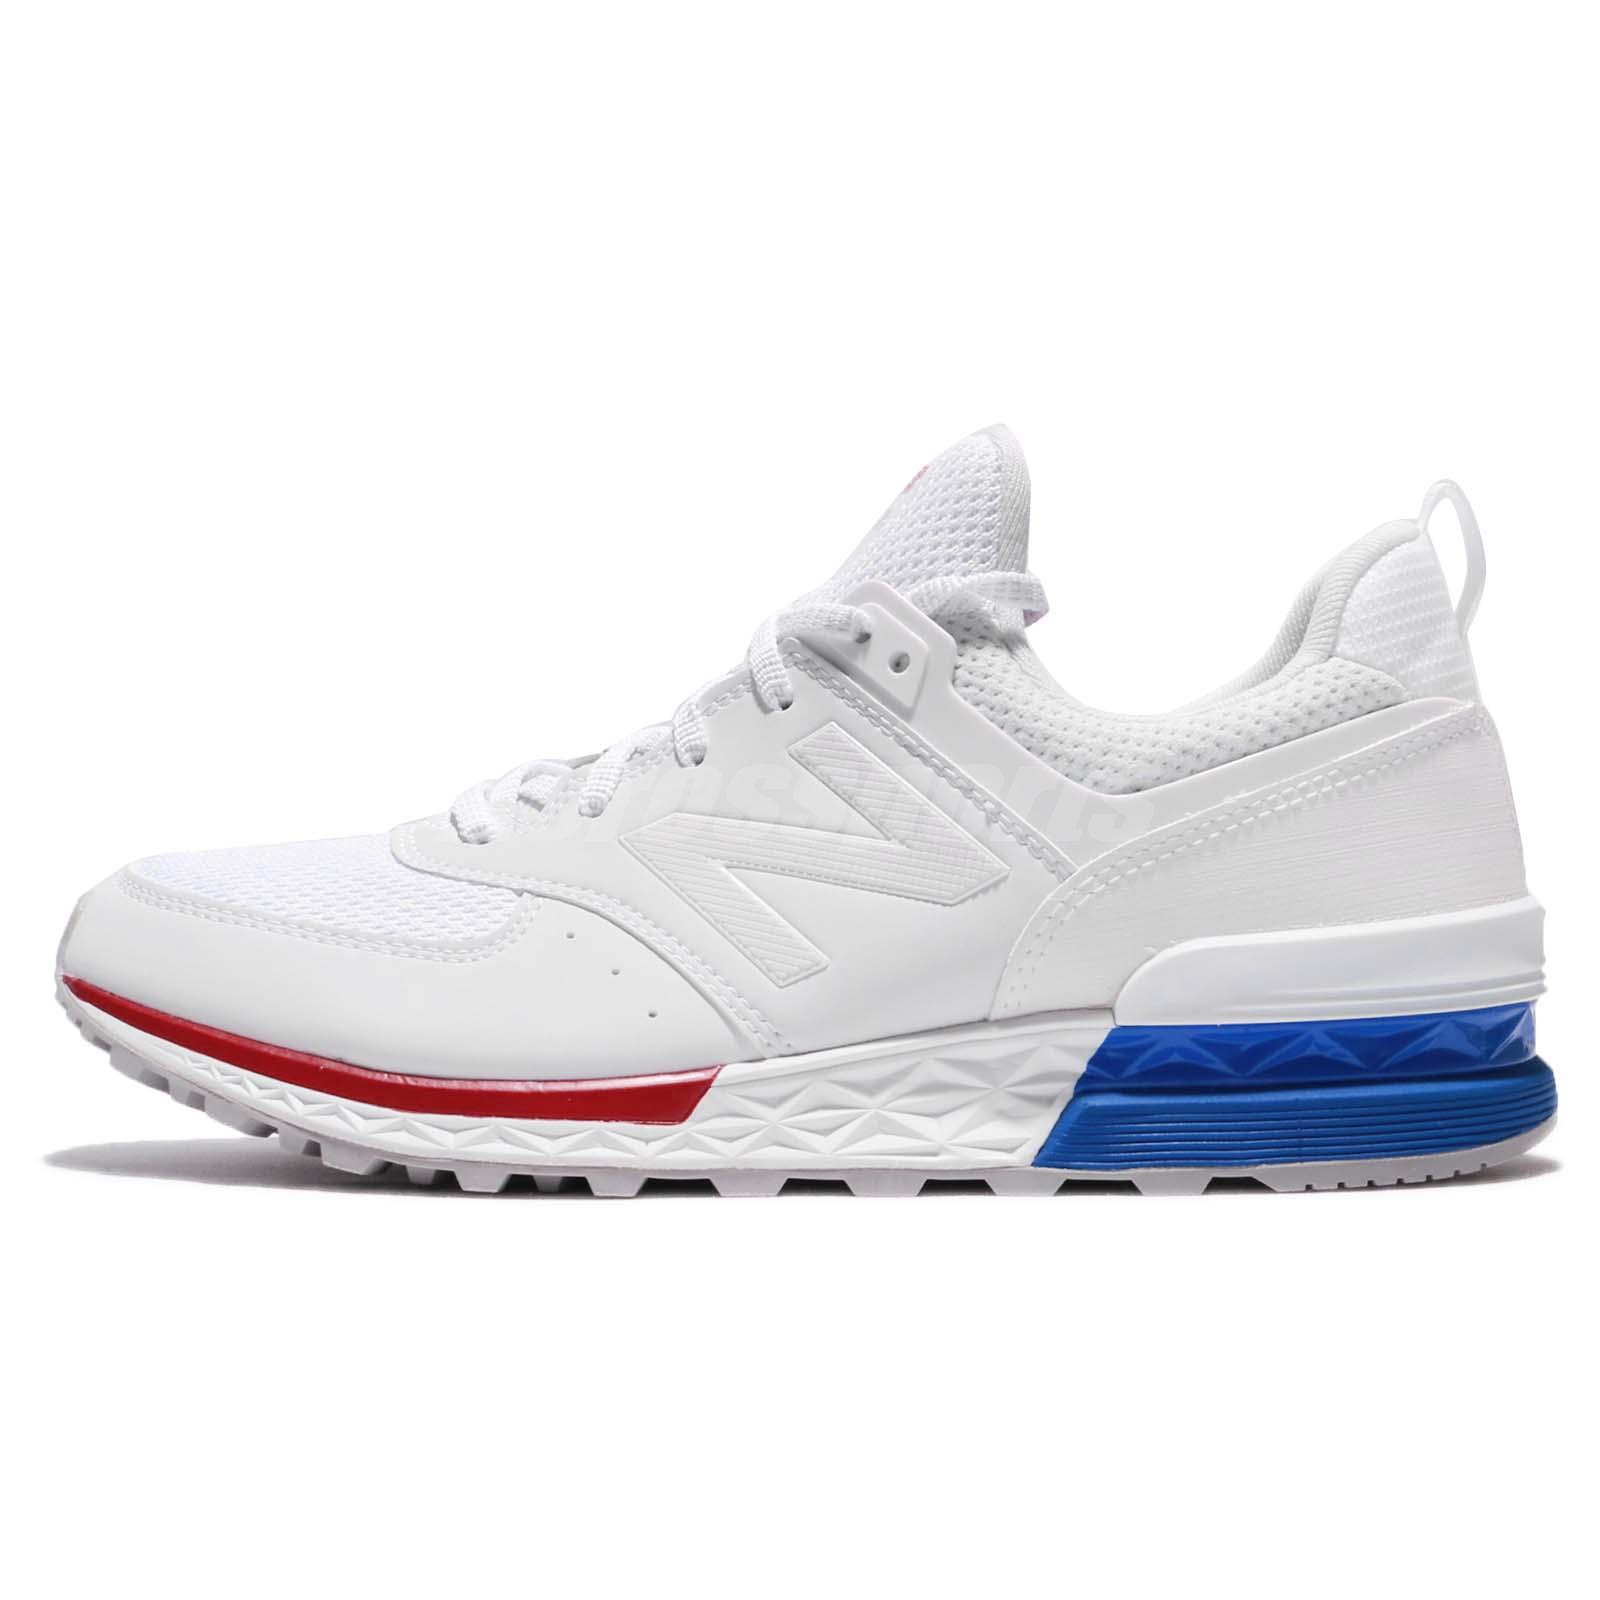 new balance 574 white and blue